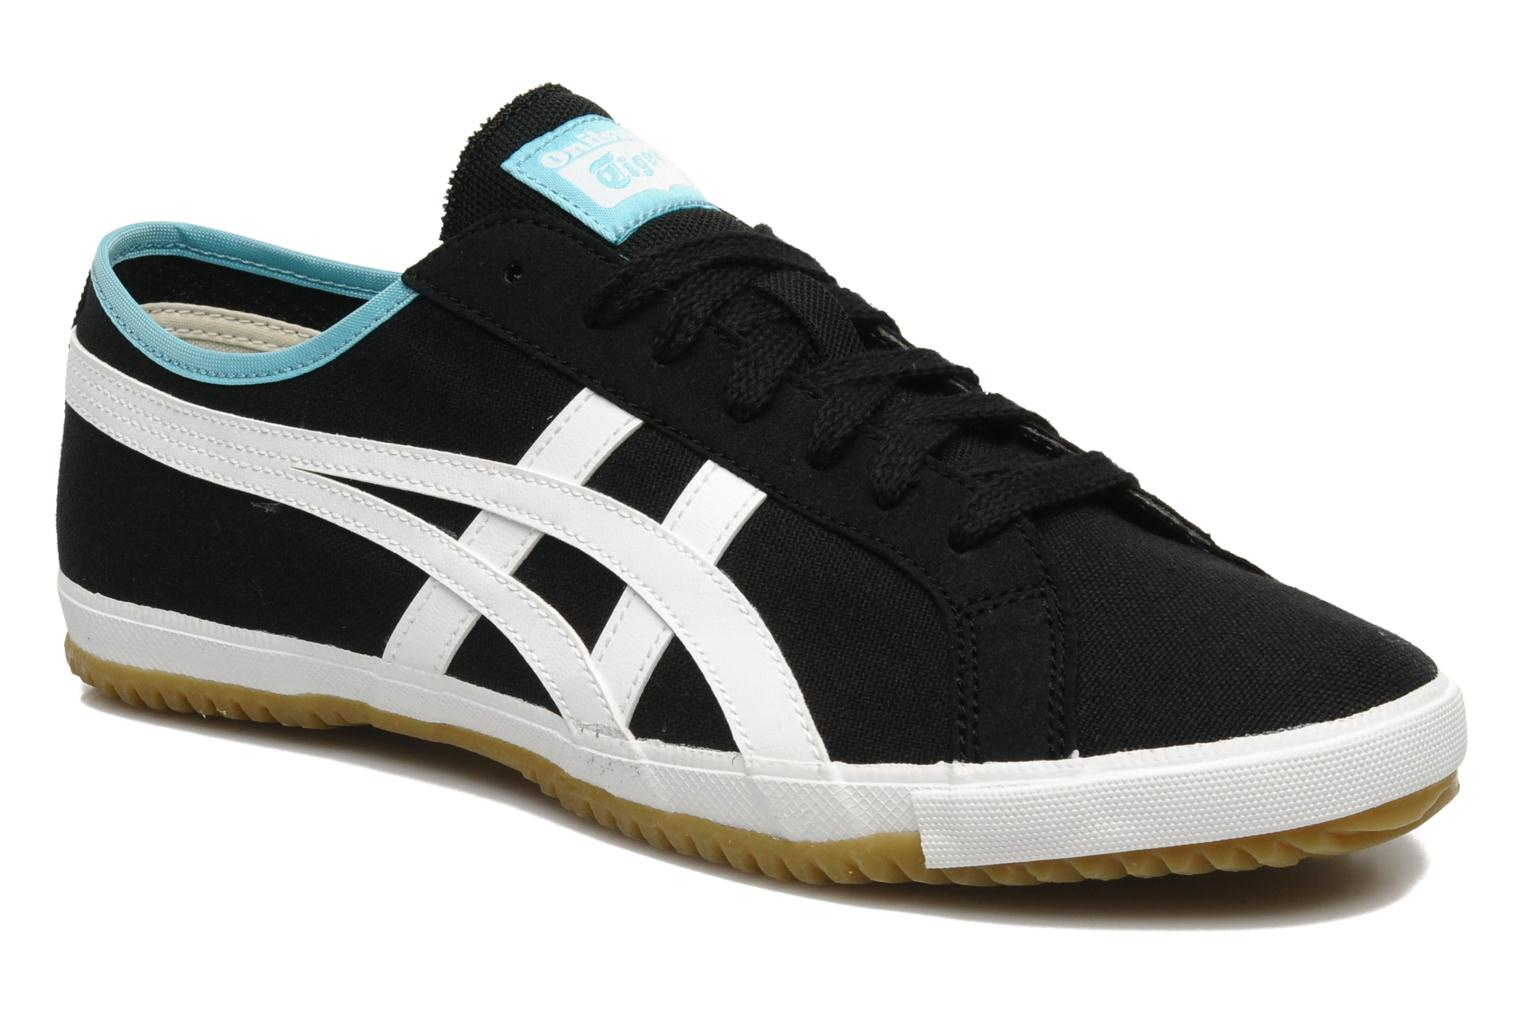 asics retro trainers